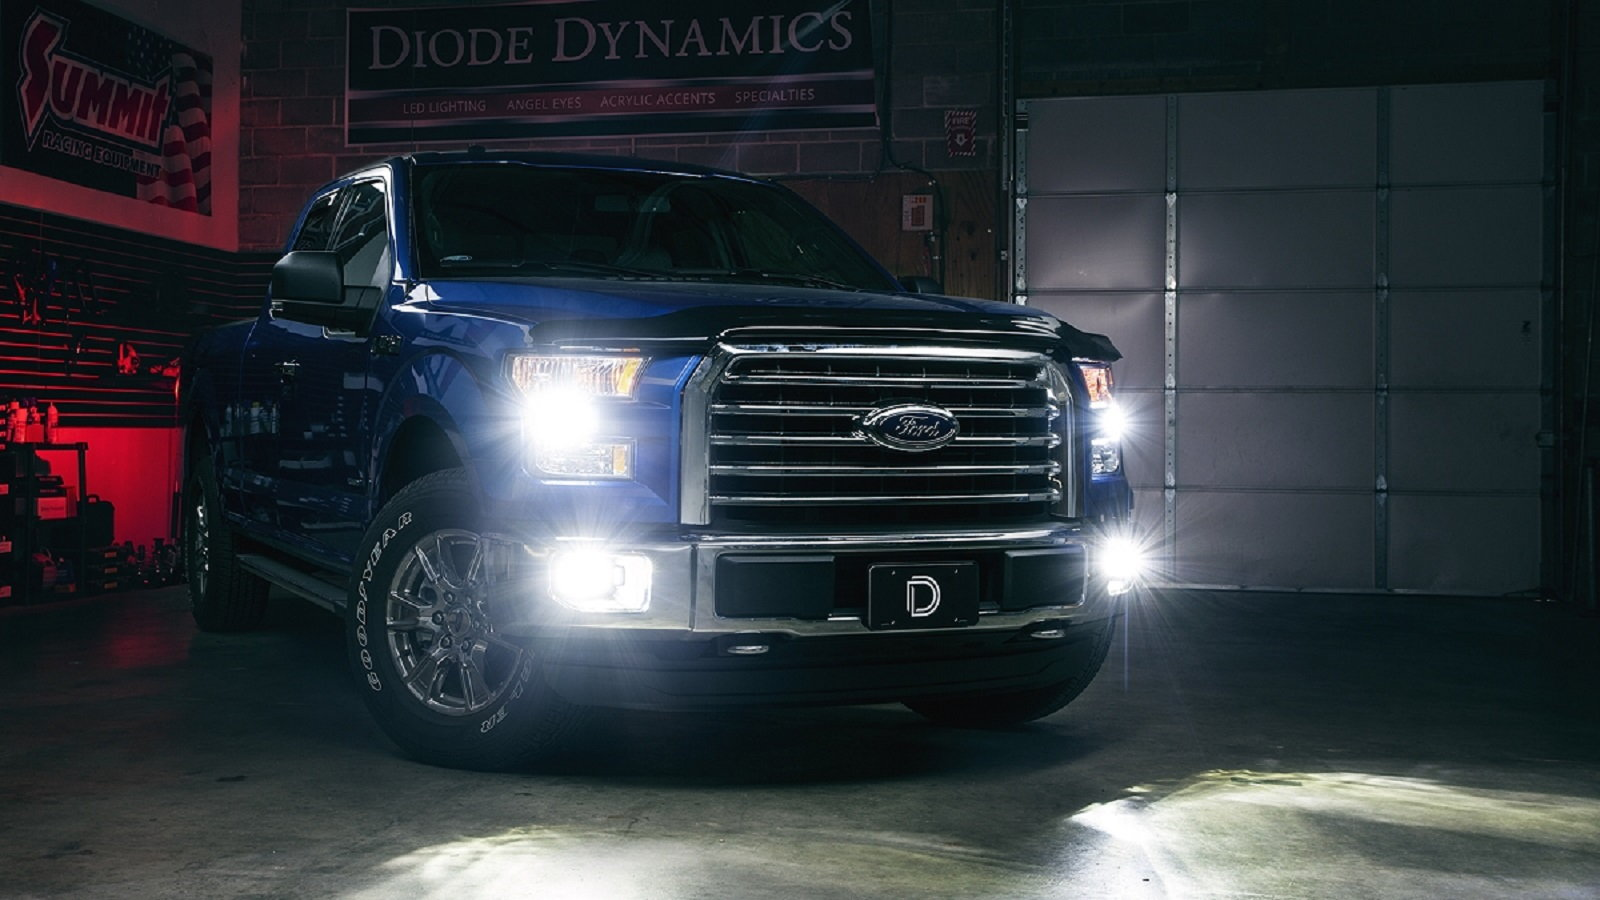 LED Fog Lights on Your Ford Truck